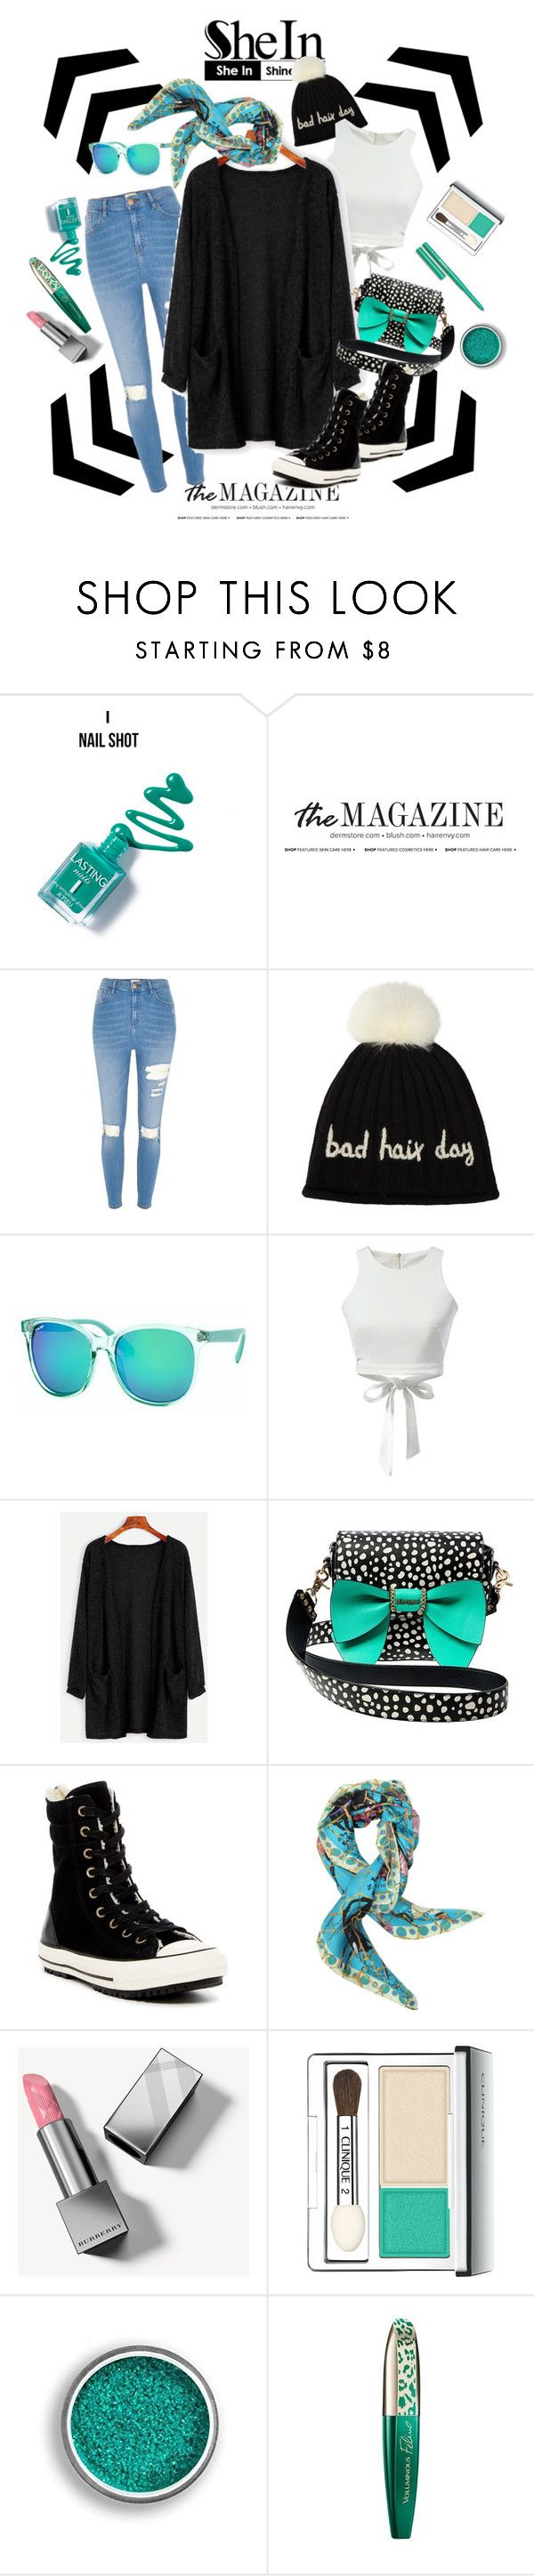 """""""A Touch of Turquoise"""" by metropulse ❤ liked on Polyvore featuring River Island, John Lewis, Polar, Betsey Johnson, Converse, Christian Lacroix, Burberry, Clinique and L'Oréal Paris"""